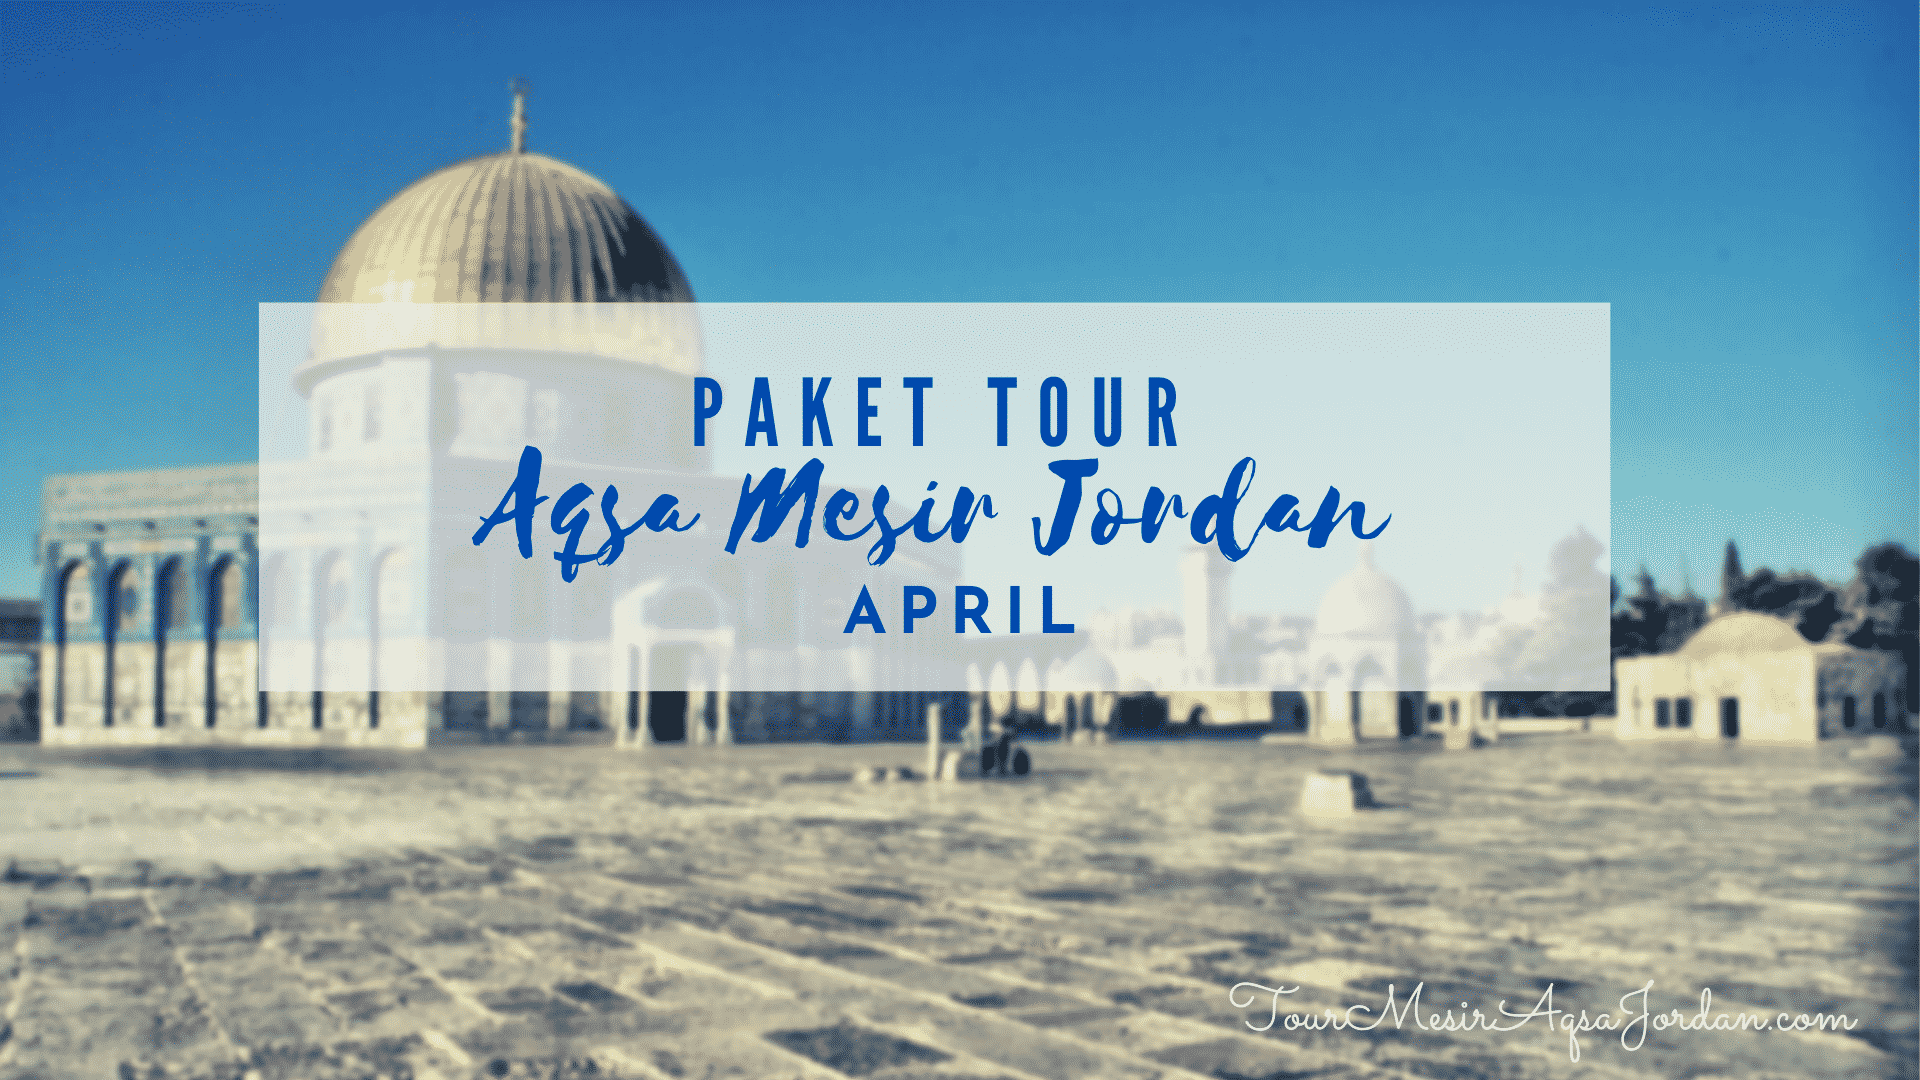 Paket Tour Aqsa Mesir Jordan April 2022